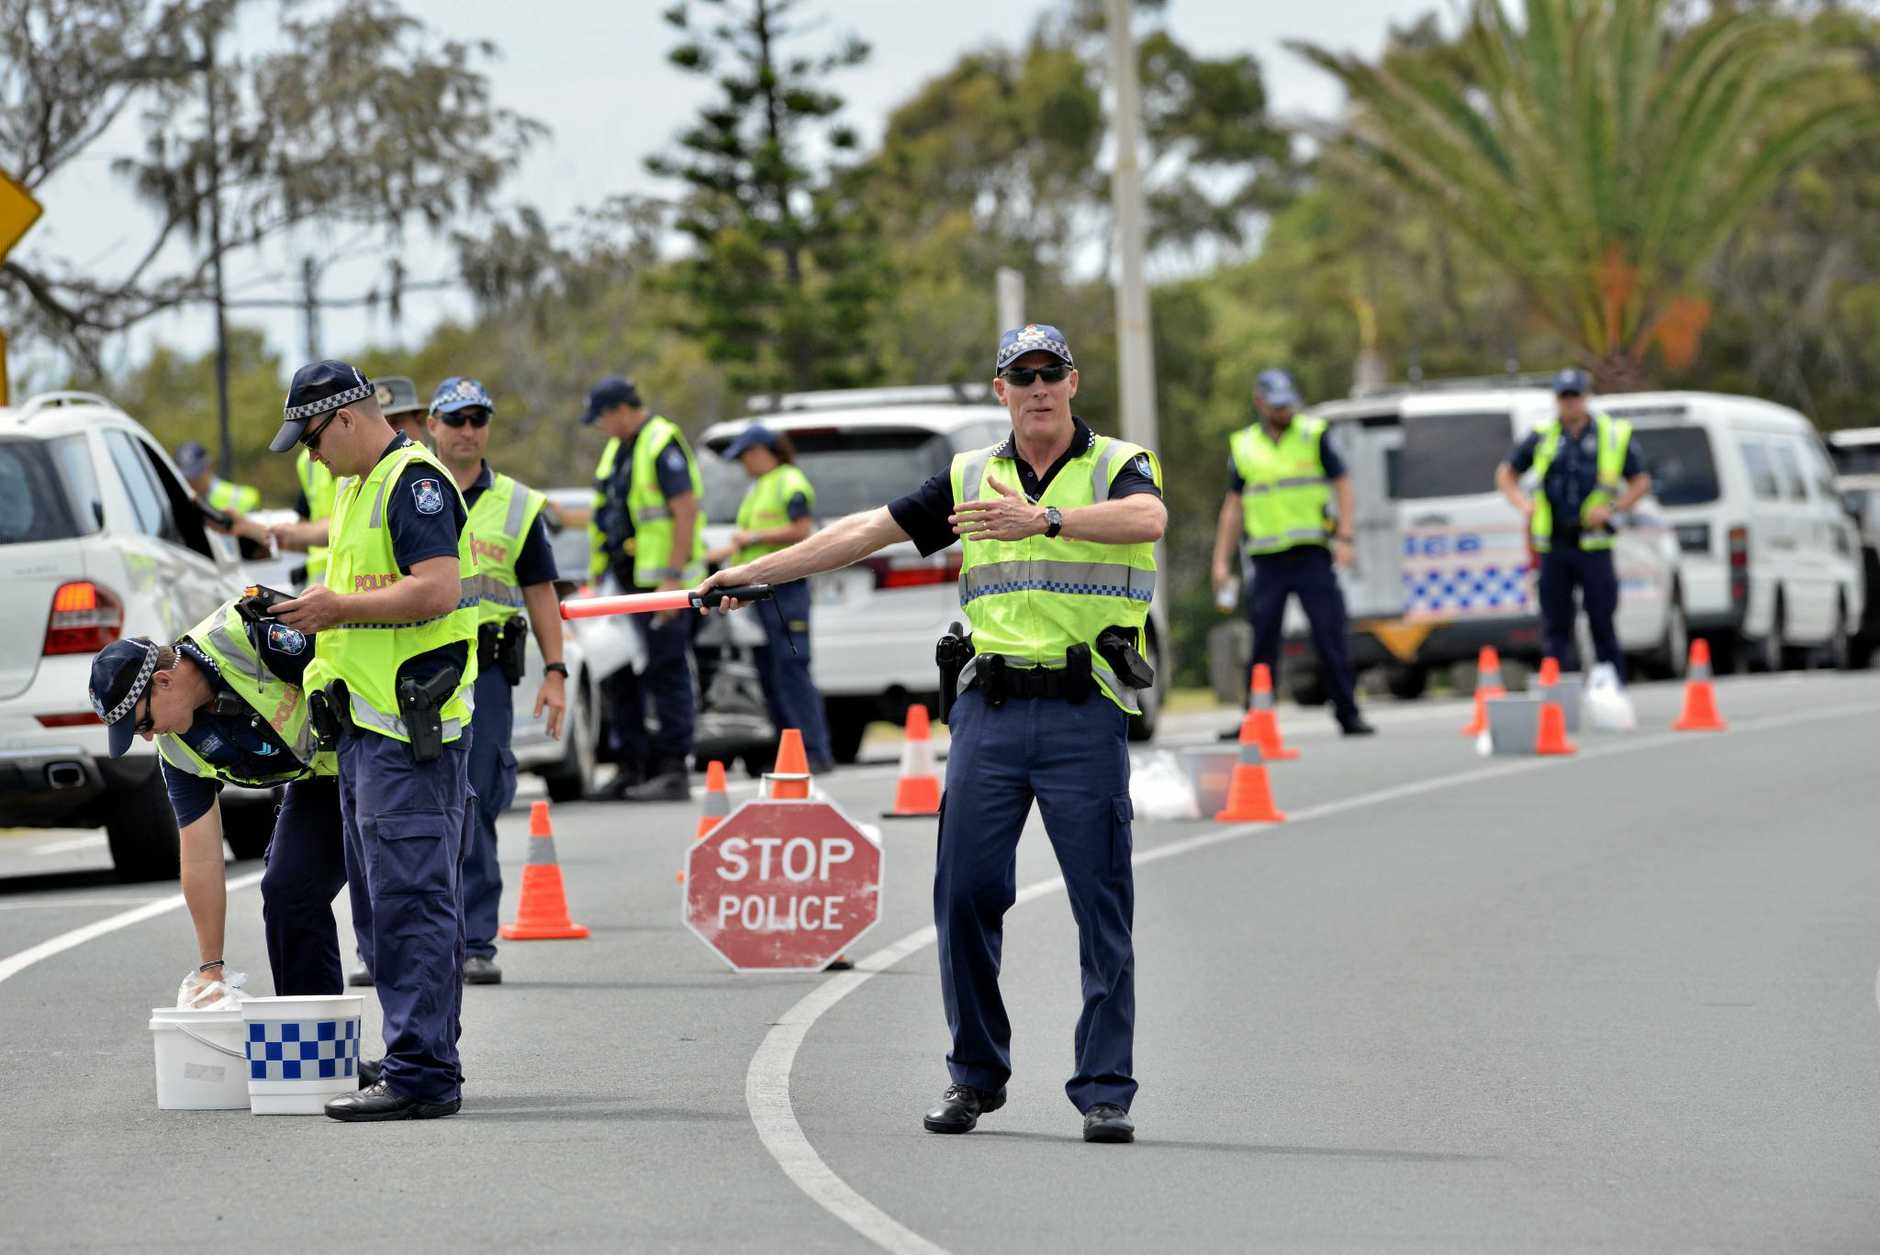 The three-day operation, targeting drink-driving, speeding and other traffic offences, started last Friday.